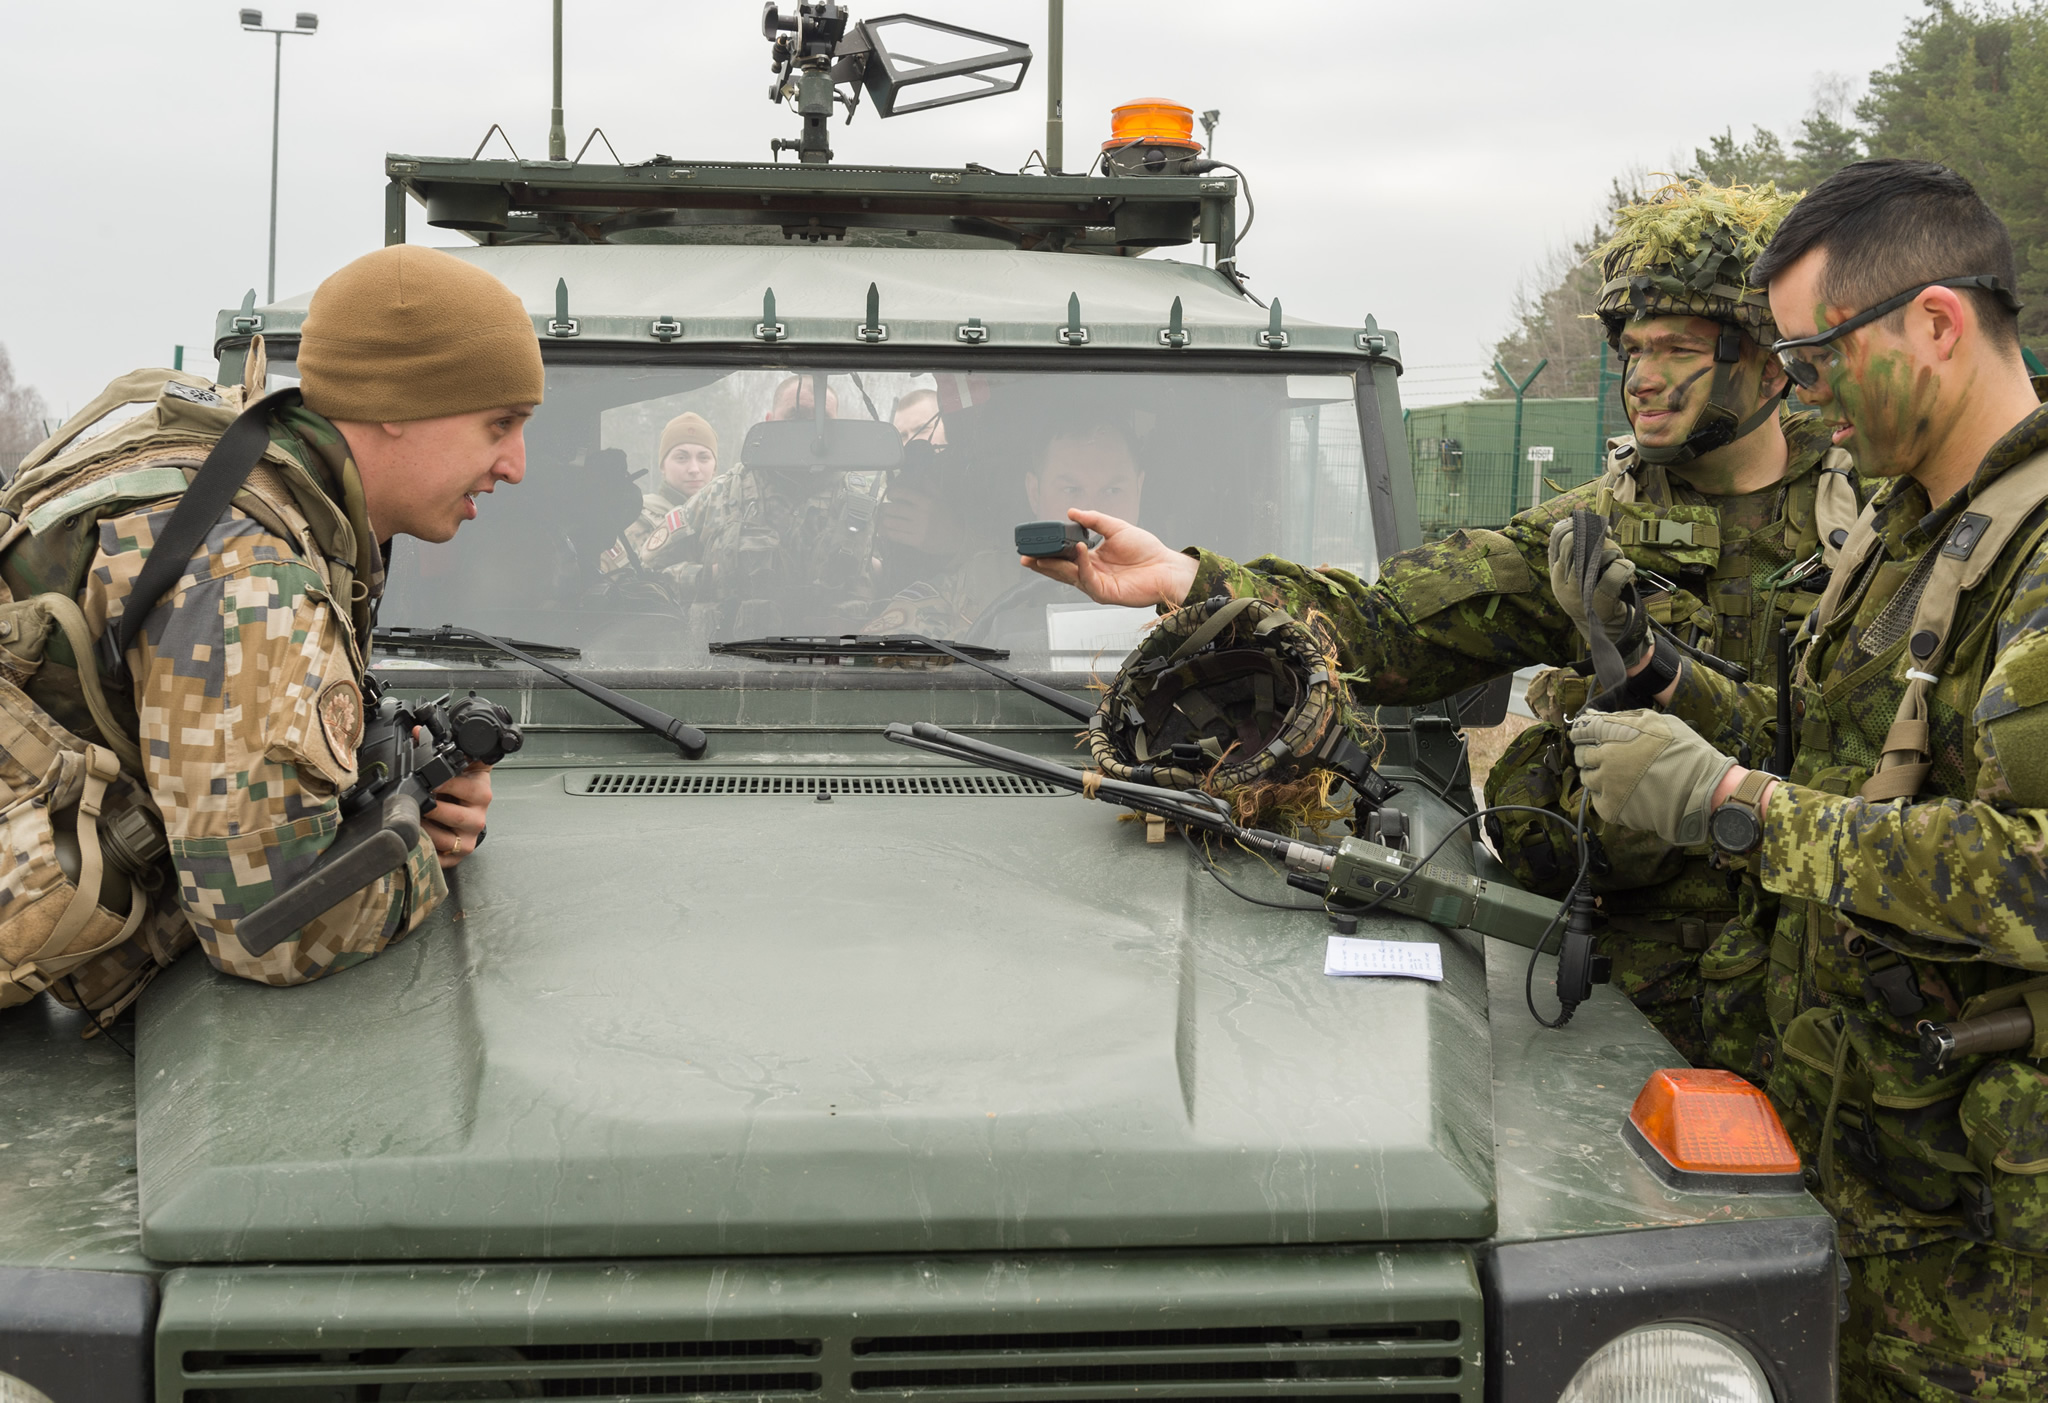 Hohenfels, Germany. March 15, 2017 – Members of 3rd Battalion, Princess Patricia's Canadian Light Infantry (3 PPCLI) work together with their Latvian counterpart to resolve a communications issue in the Hohenfels Training Area on Exercise ALLIED SPIRIT VI during Operation REASSURANCE. (Photo: MCpl Jennifer Kusche, Canadian Forces Combat Camera)